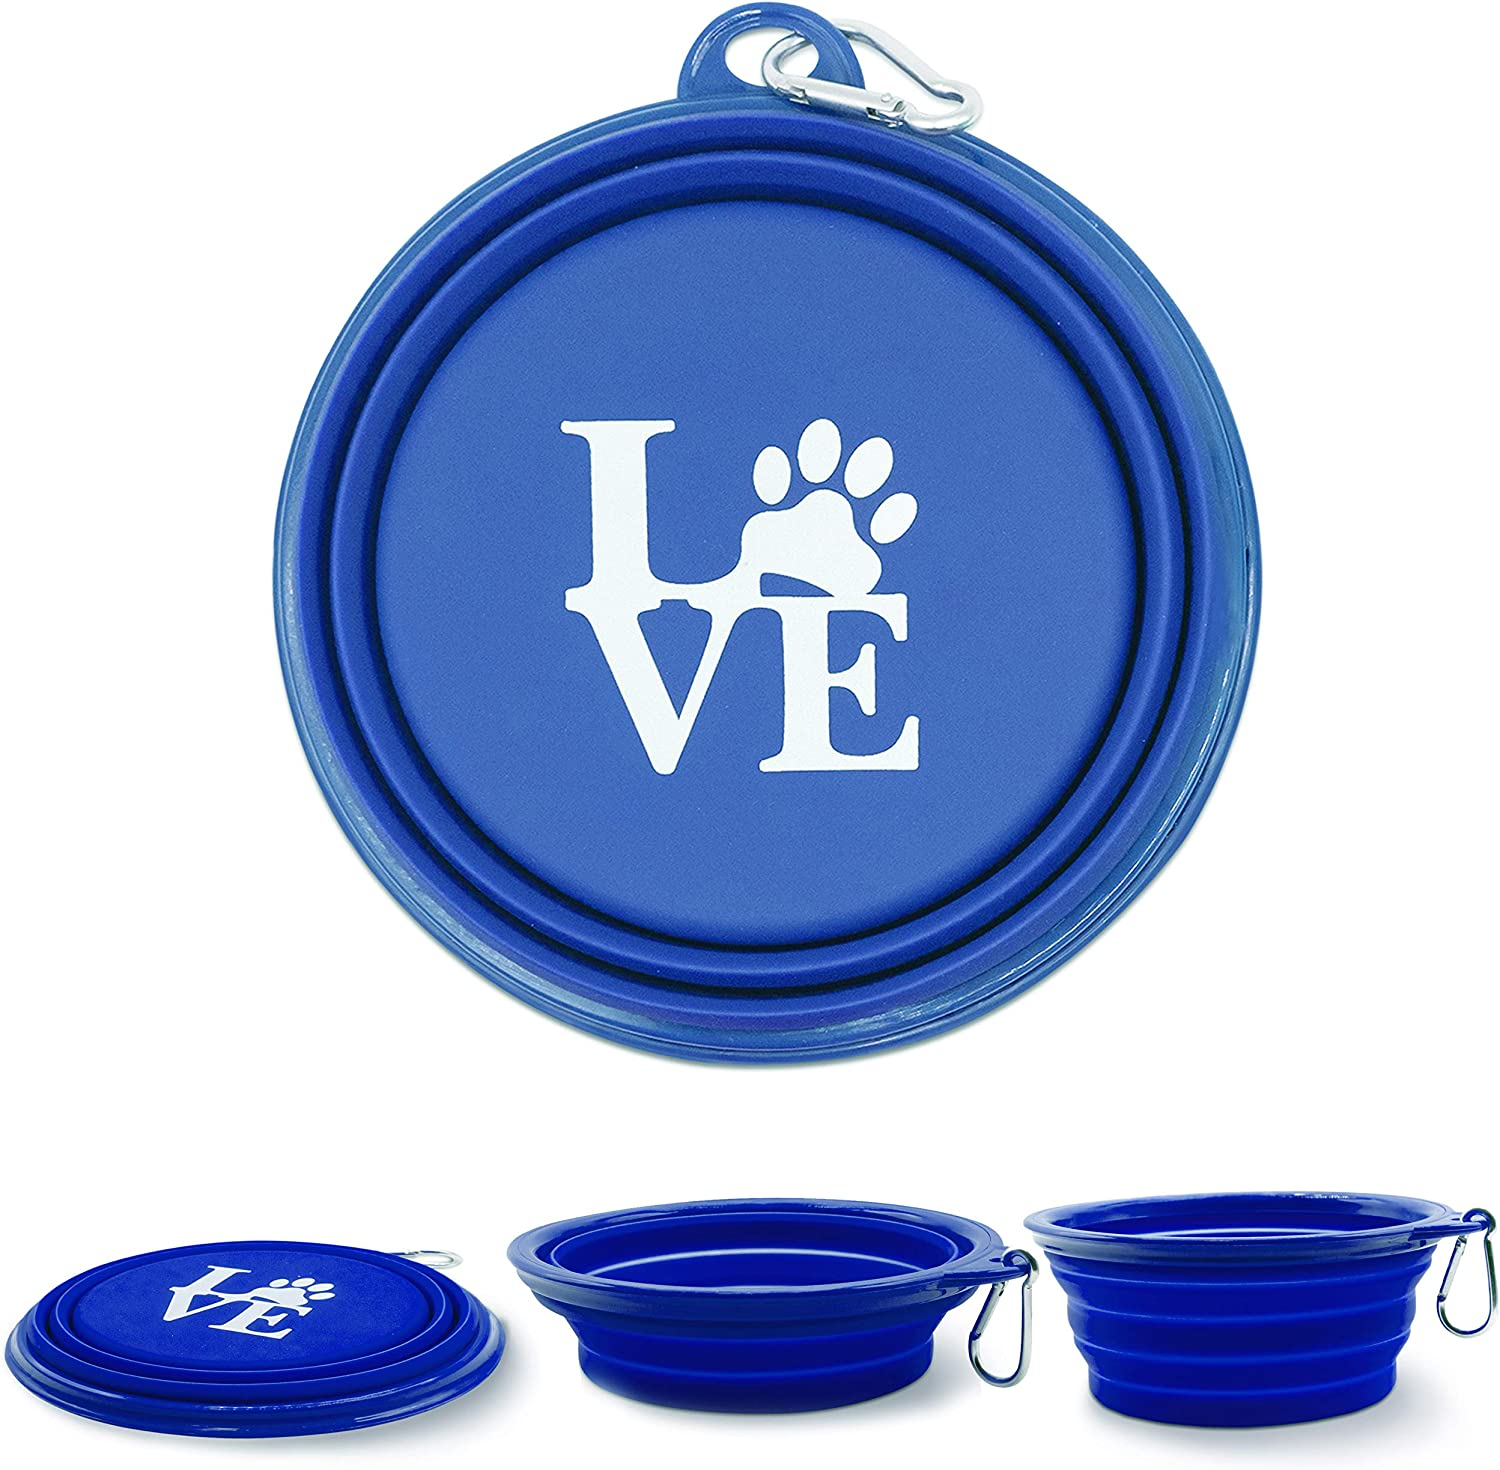 Collapsible Indefinitely Dog Bowls for Travel Oakland Mall and Dogs Water Bowl